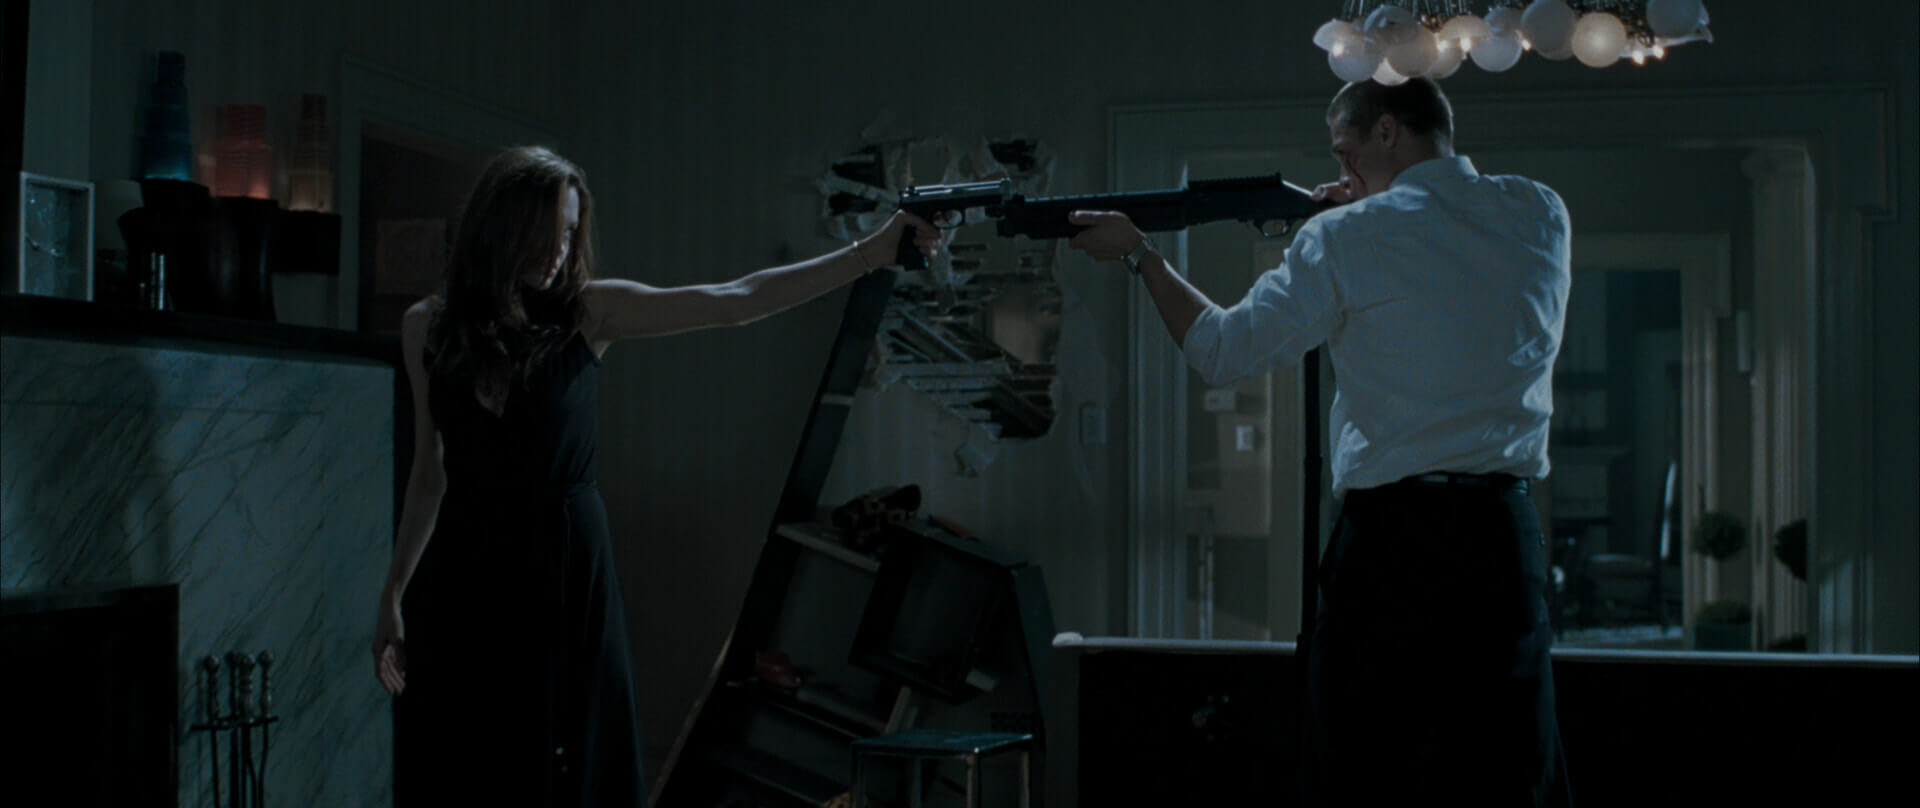 Fight Choreography and Fists - How to Shoot A Fight Scene - Mr and Mrs Smith Gun Fight